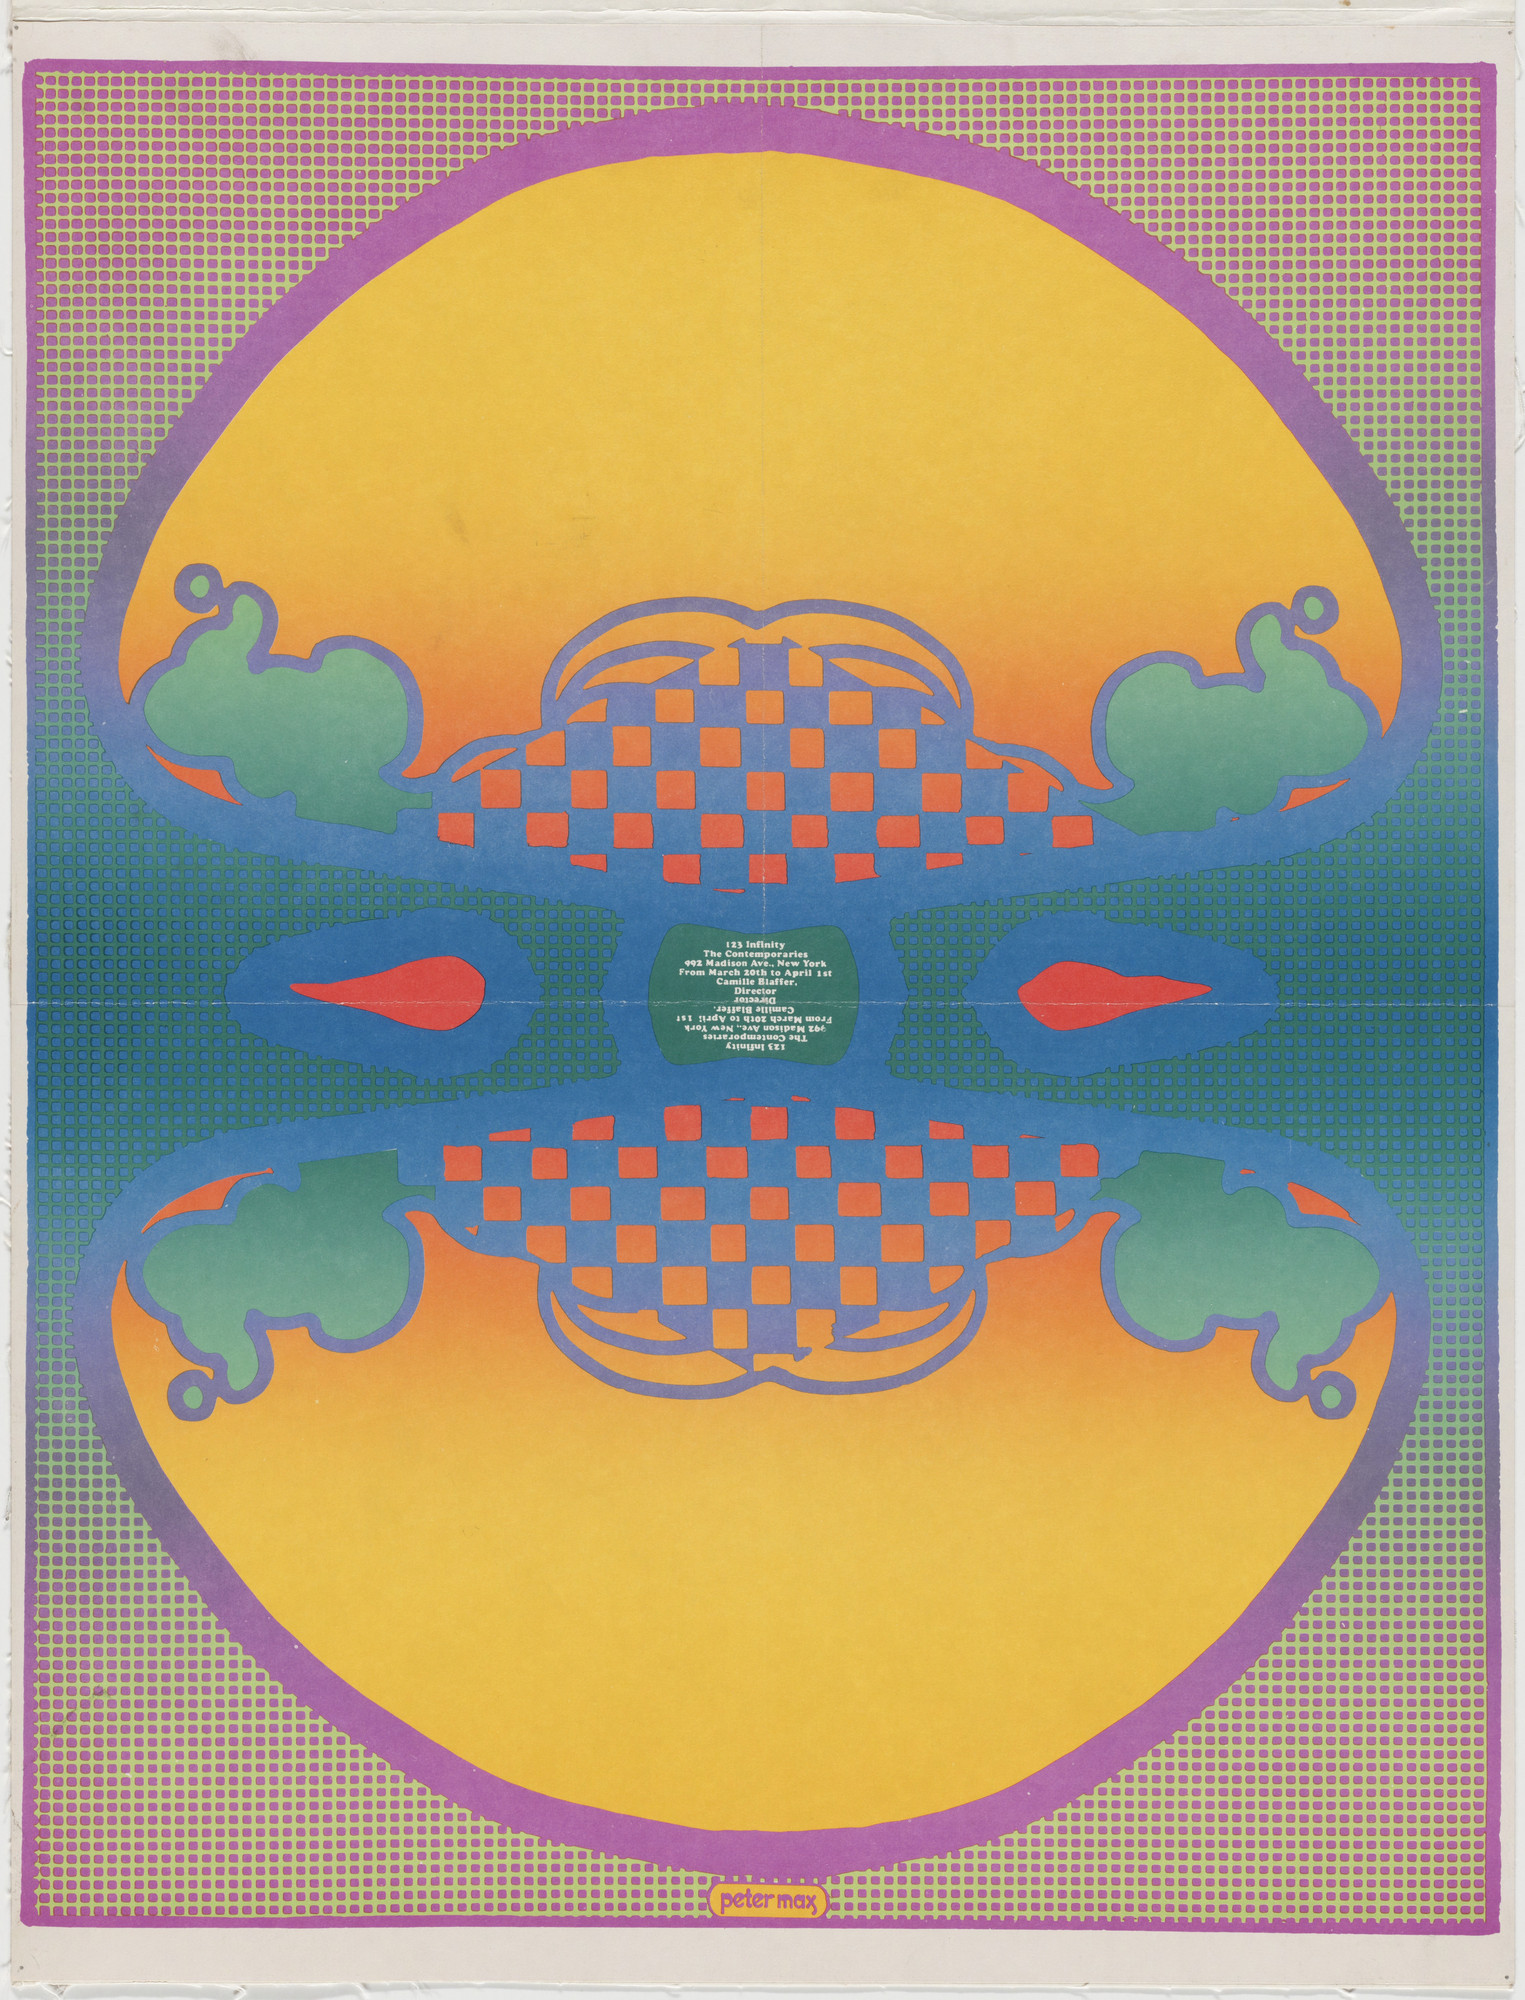 Peter Max. 1 2 3 Infinity, The Contemporaries. 1967